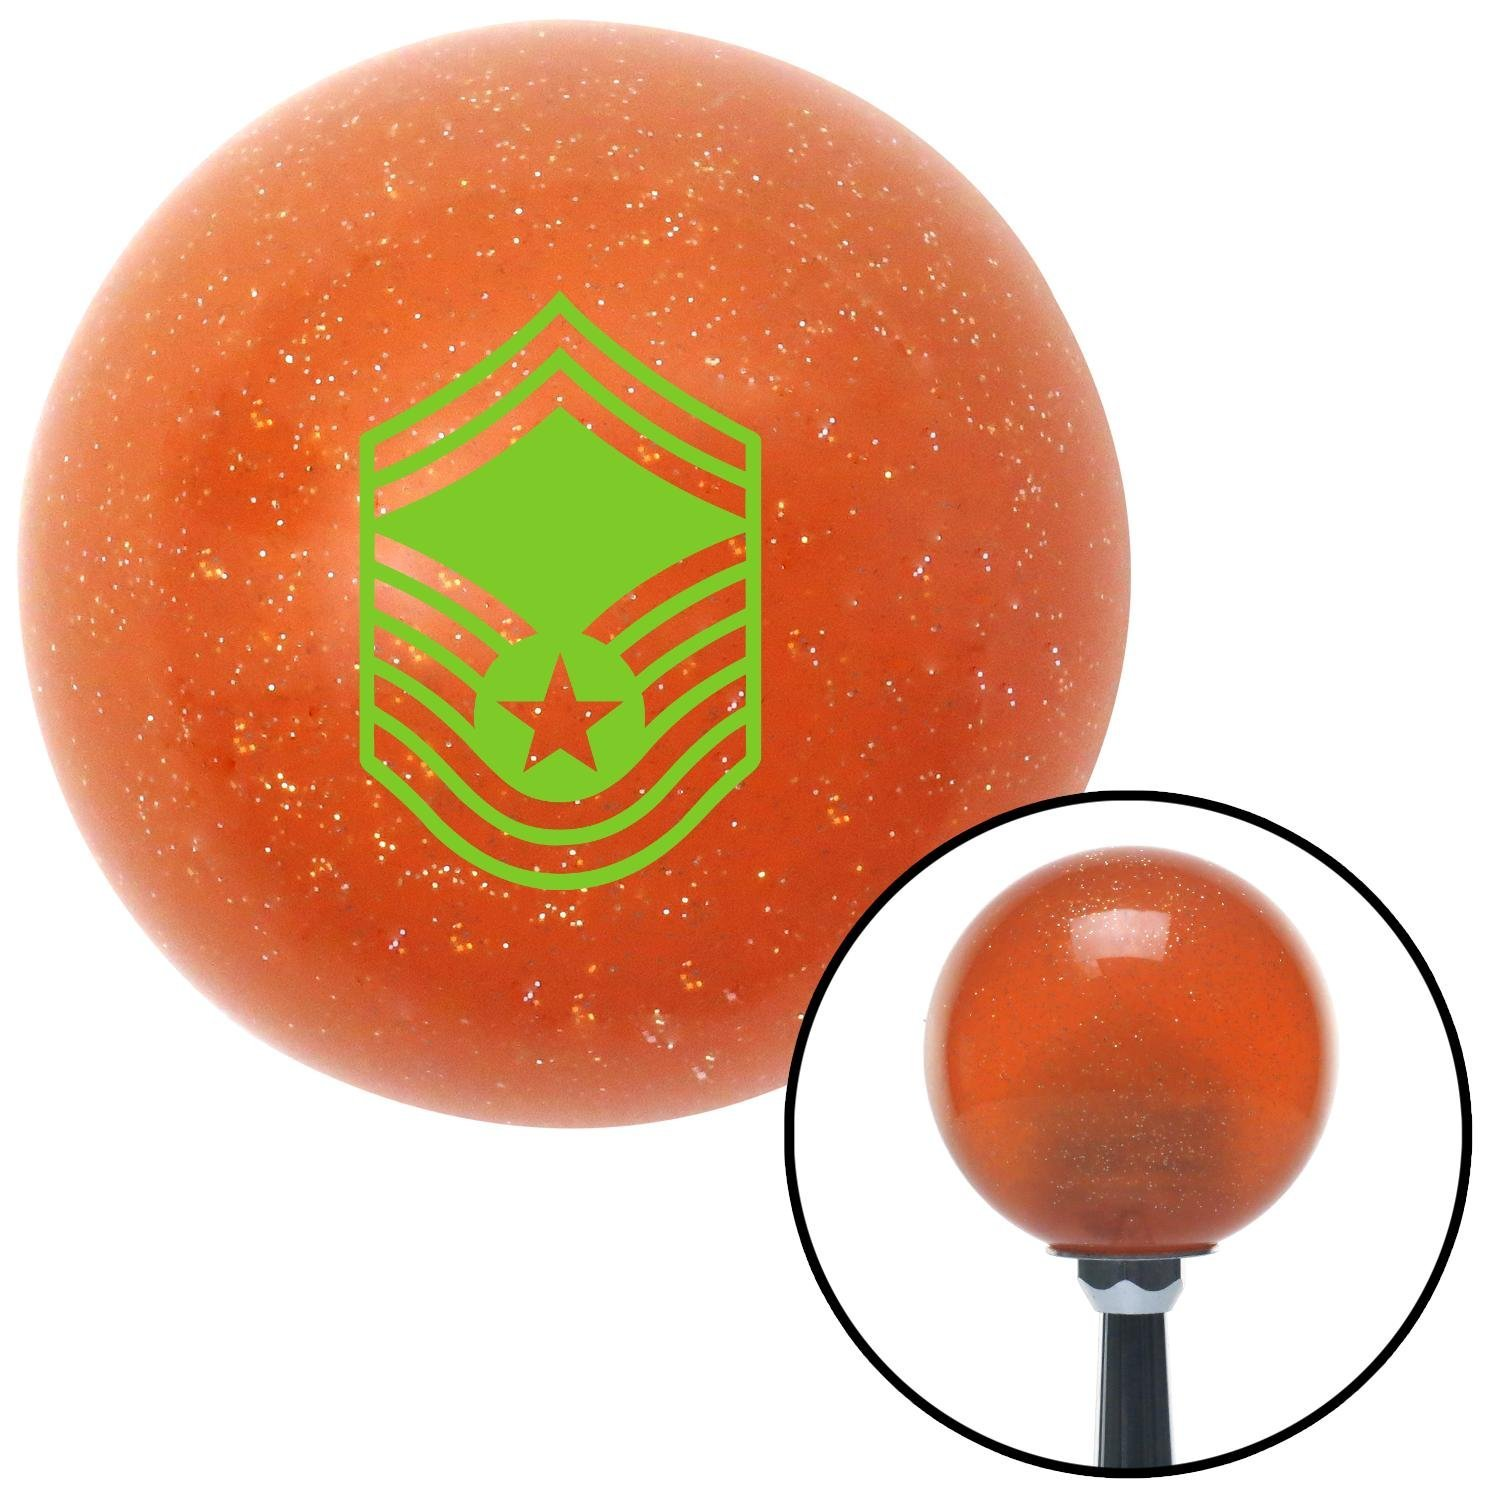 American Shifter 38405 Orange Metal Flake Shift Knob with 16mm x 1.5mm Insert Green Senior Master Sergeant